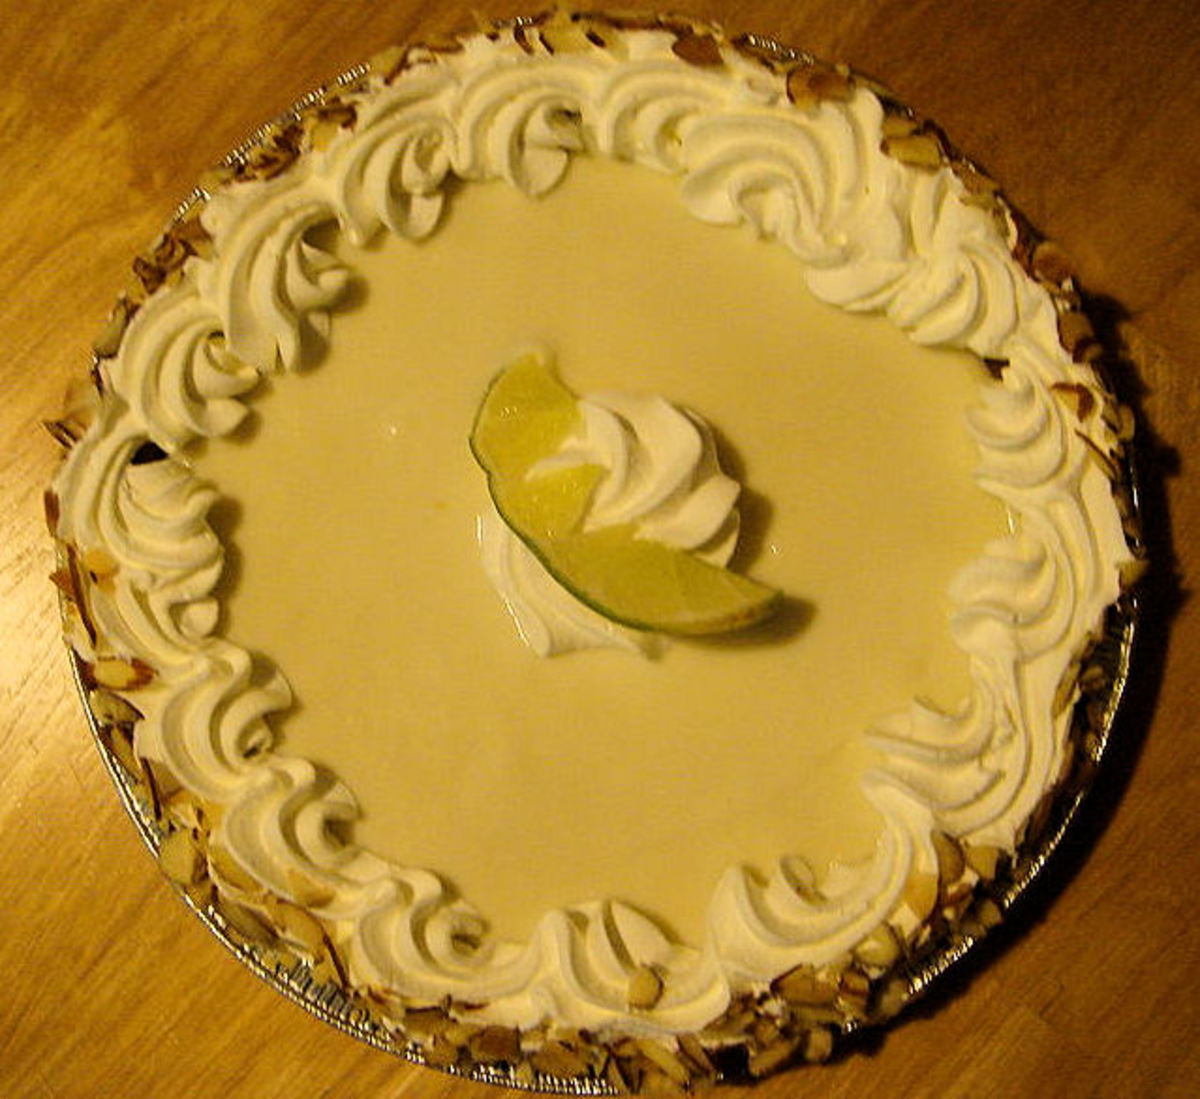 Original style key lime pie from Publix, a Florida grocery store chain.